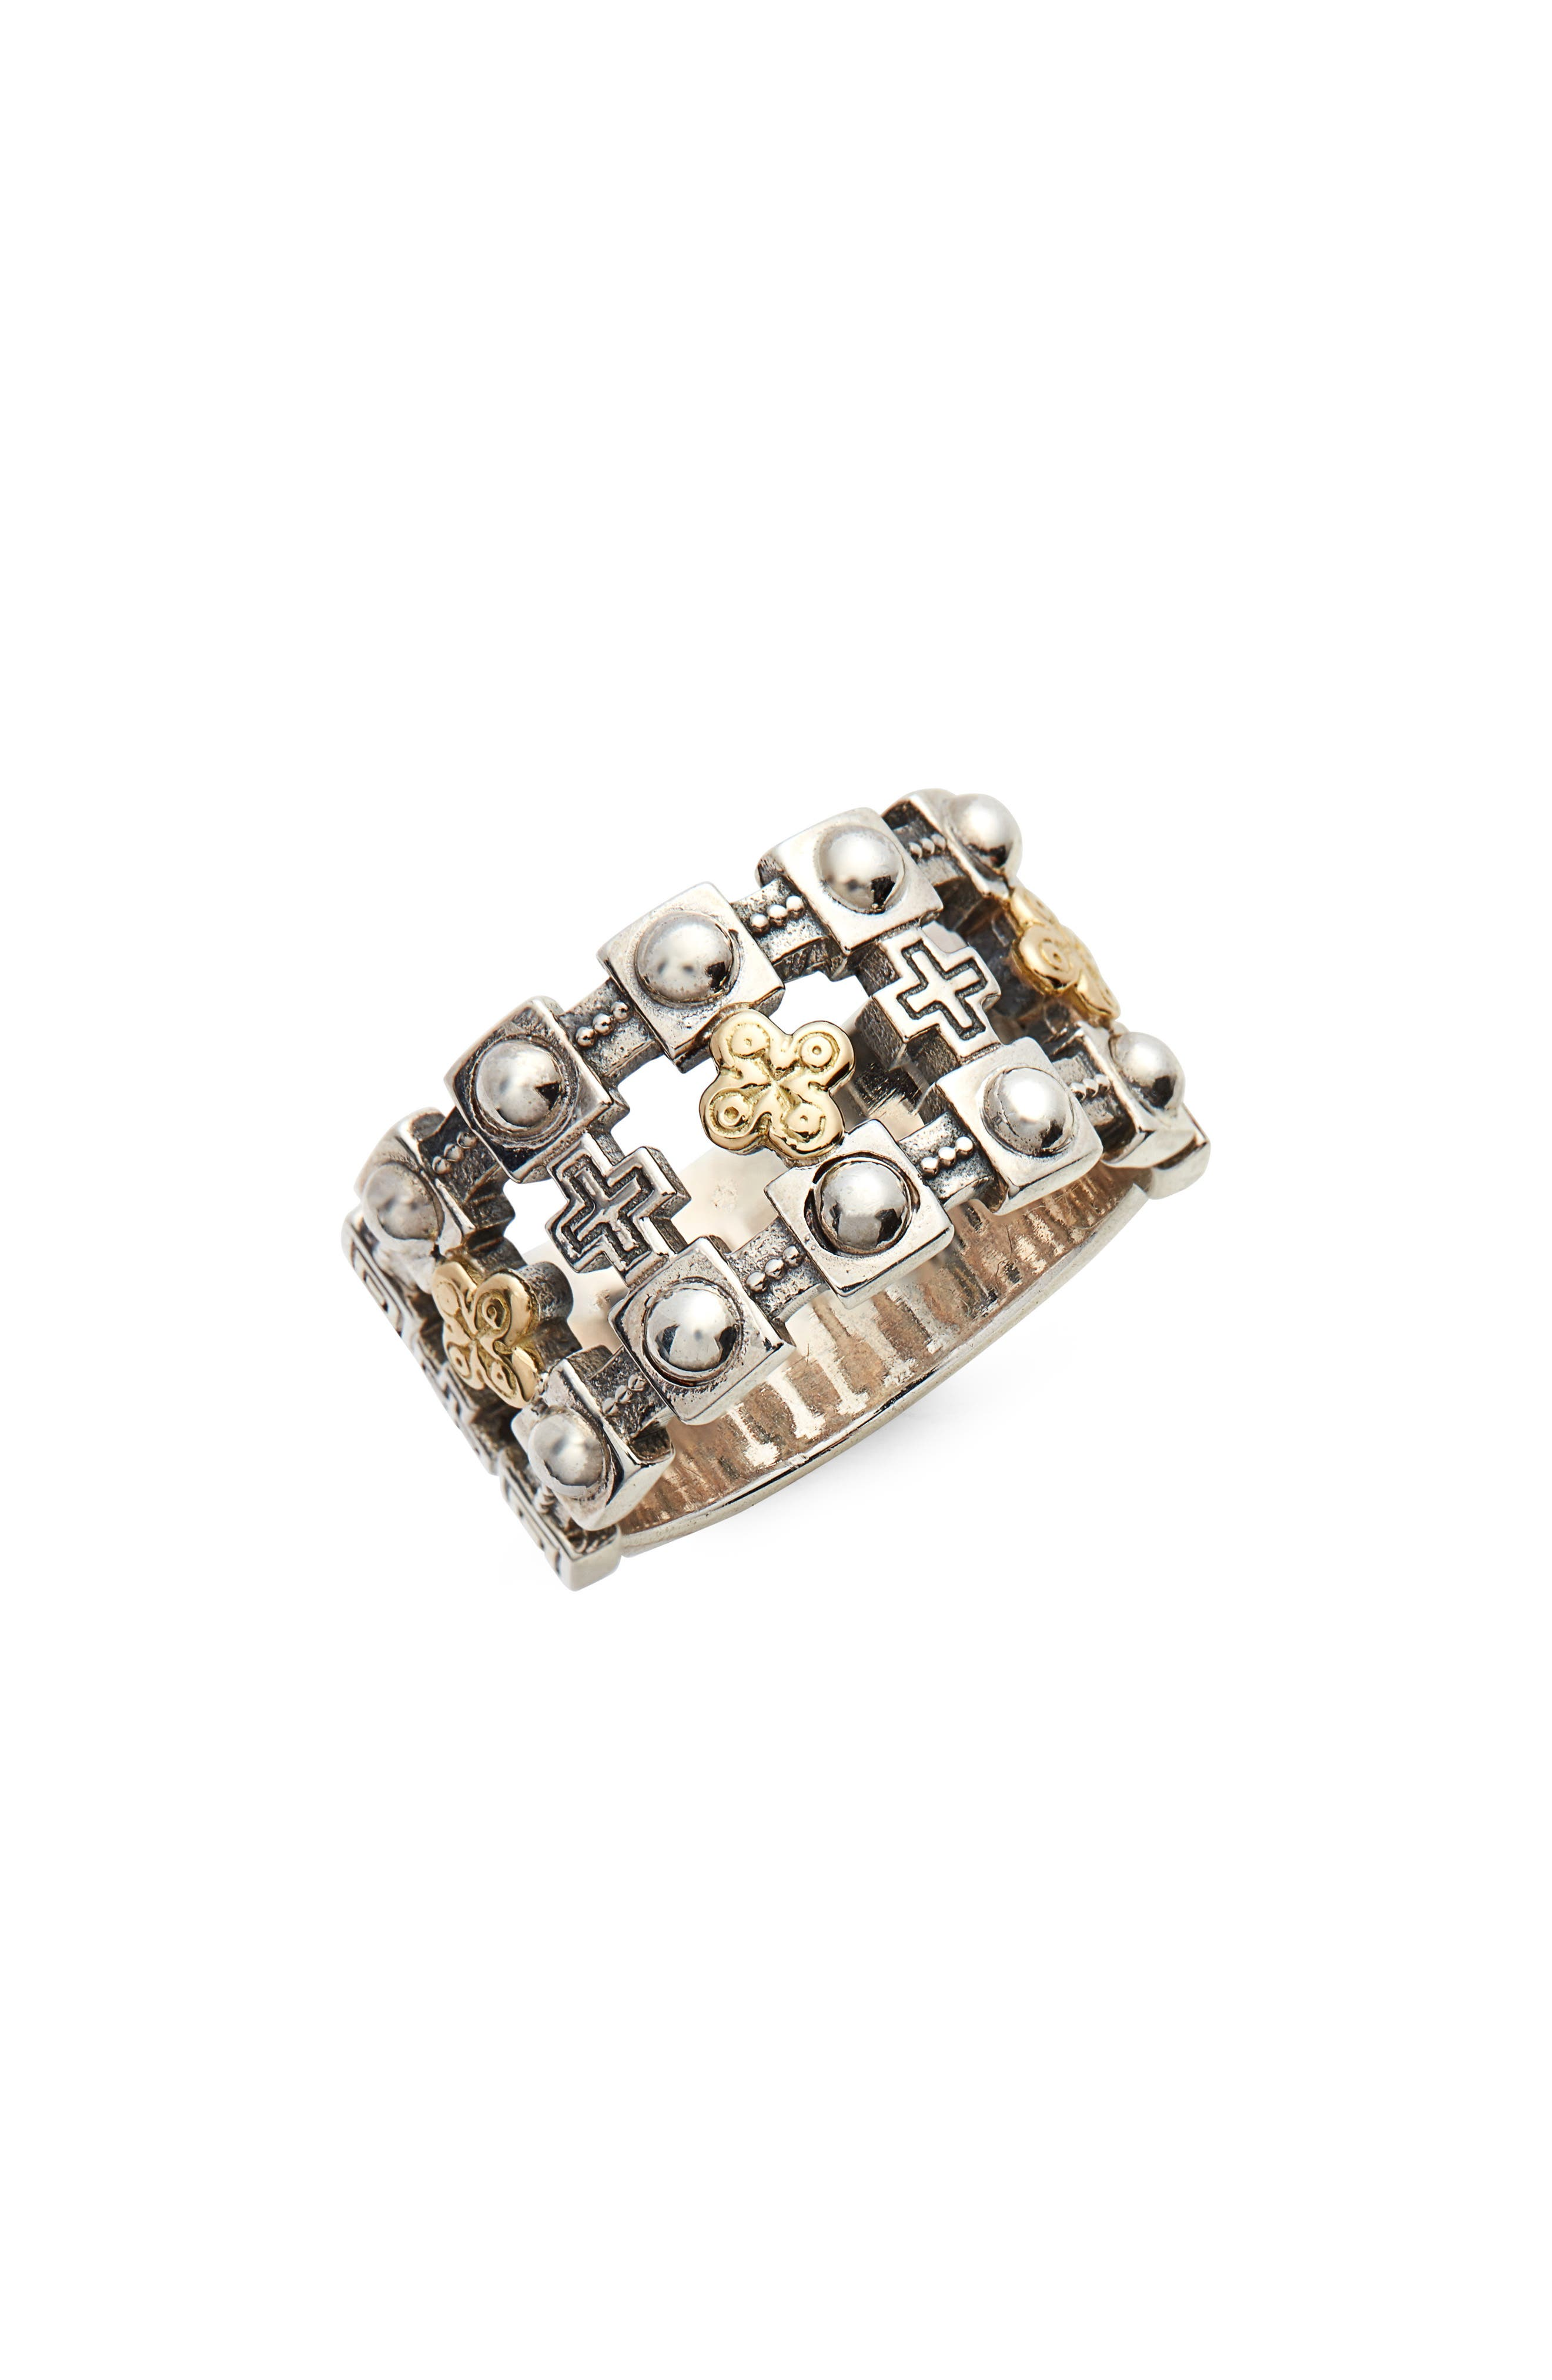 Stavros Openwork Ring,                             Main thumbnail 1, color,                             SILVER/ GOLD